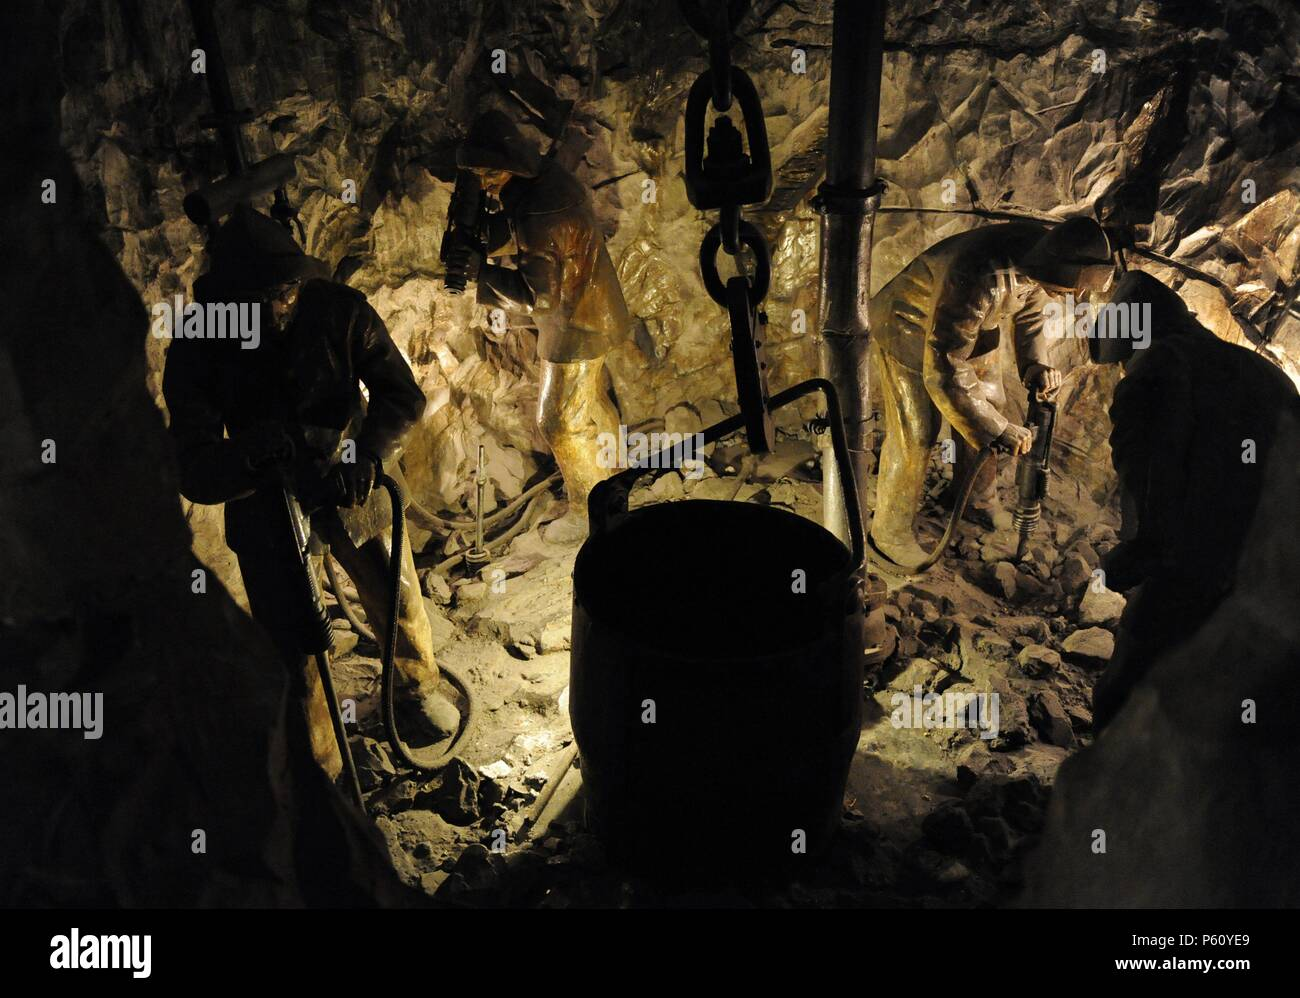 History. Mining. Drilling  with a jackhammer. Diorama. Deutsches Museum (Museum of Science and Technology). Munich. Germany. - Stock Image